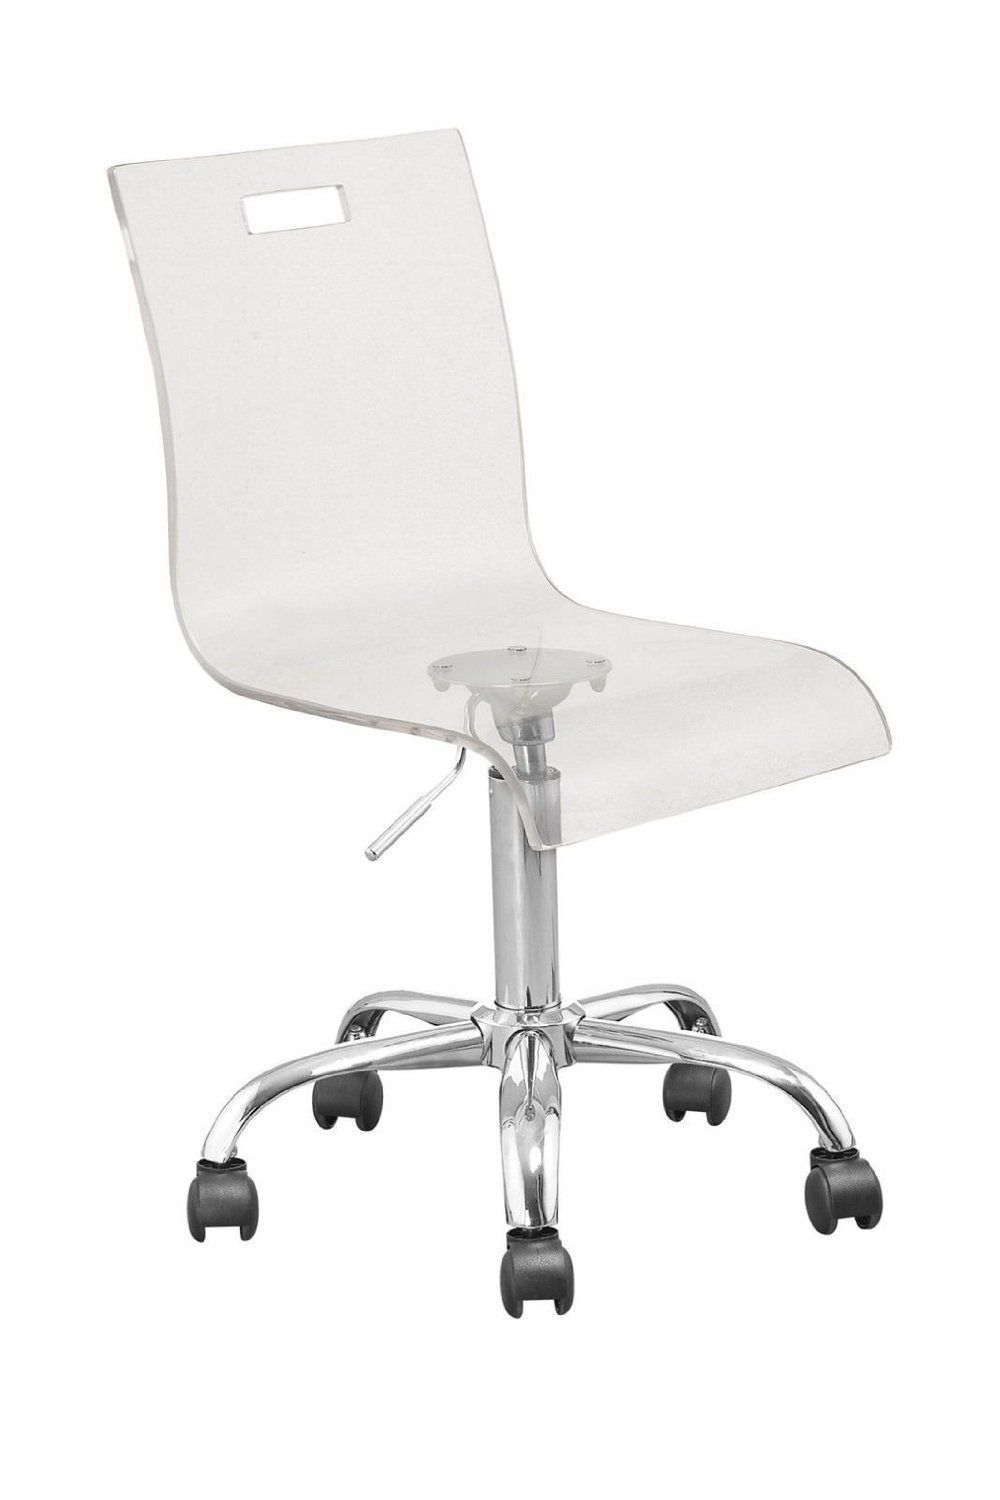 Acrylic Rolling Office Chair Real Wood Home Furniture Check More At Http